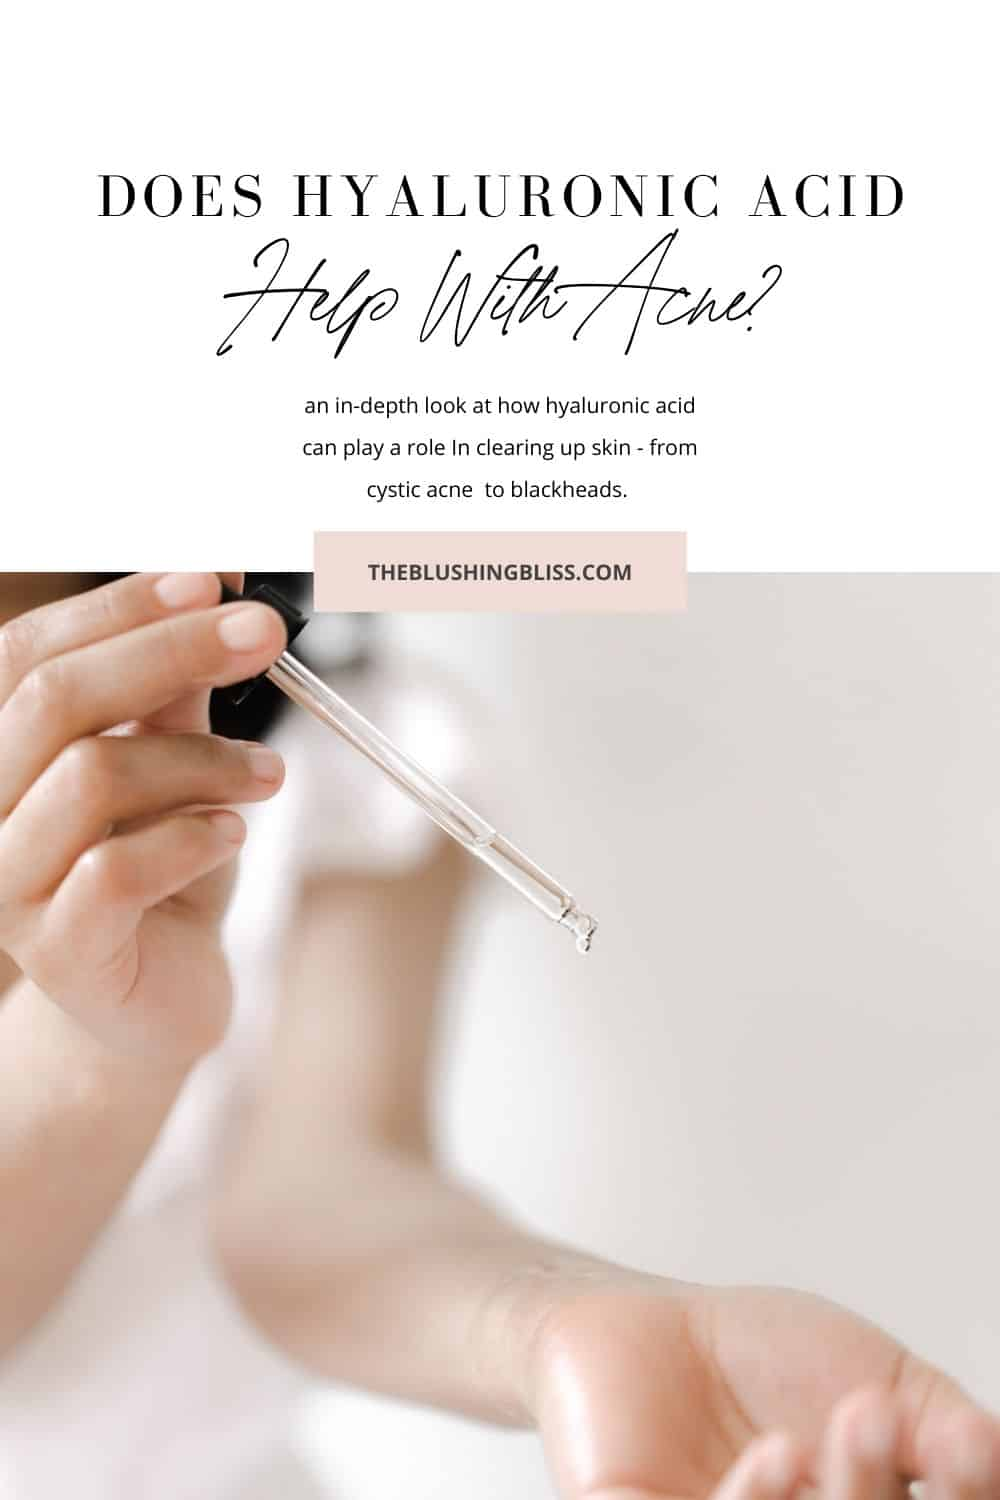 will hyaluronic acid help acne